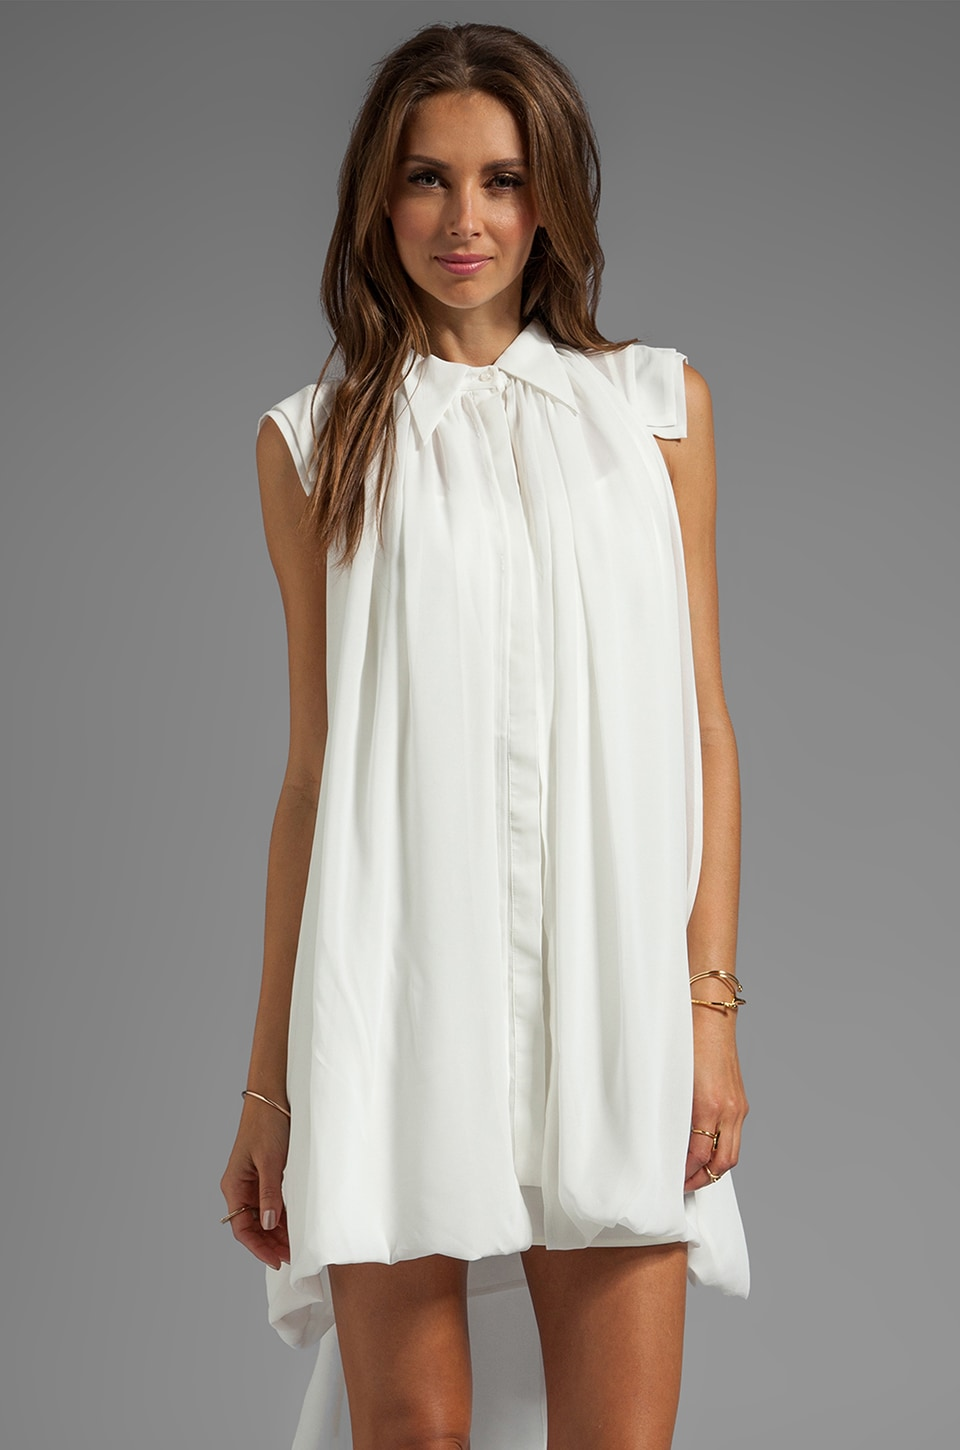 C/MEO Summertime Sadness Dress in White